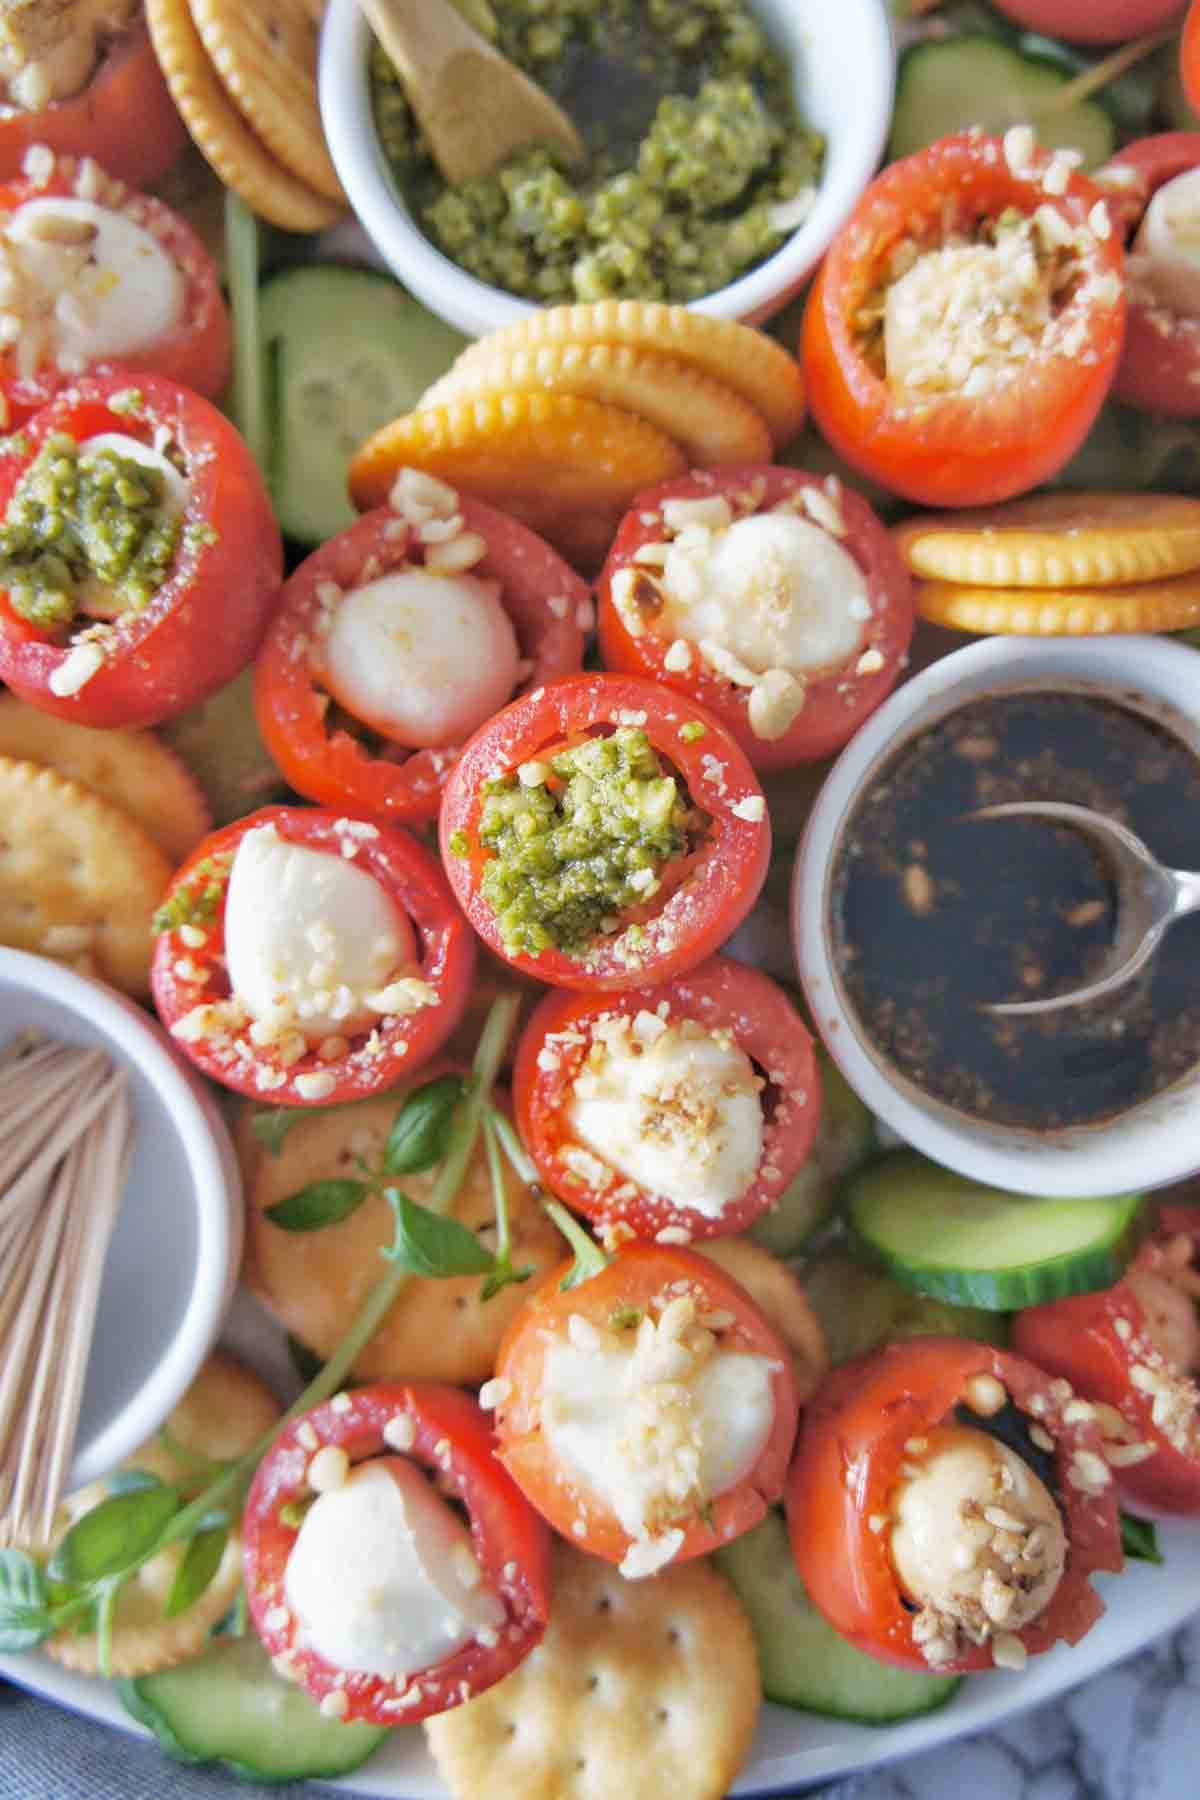 Caprese bites showing mozzarella in tomatoes with basil pesto